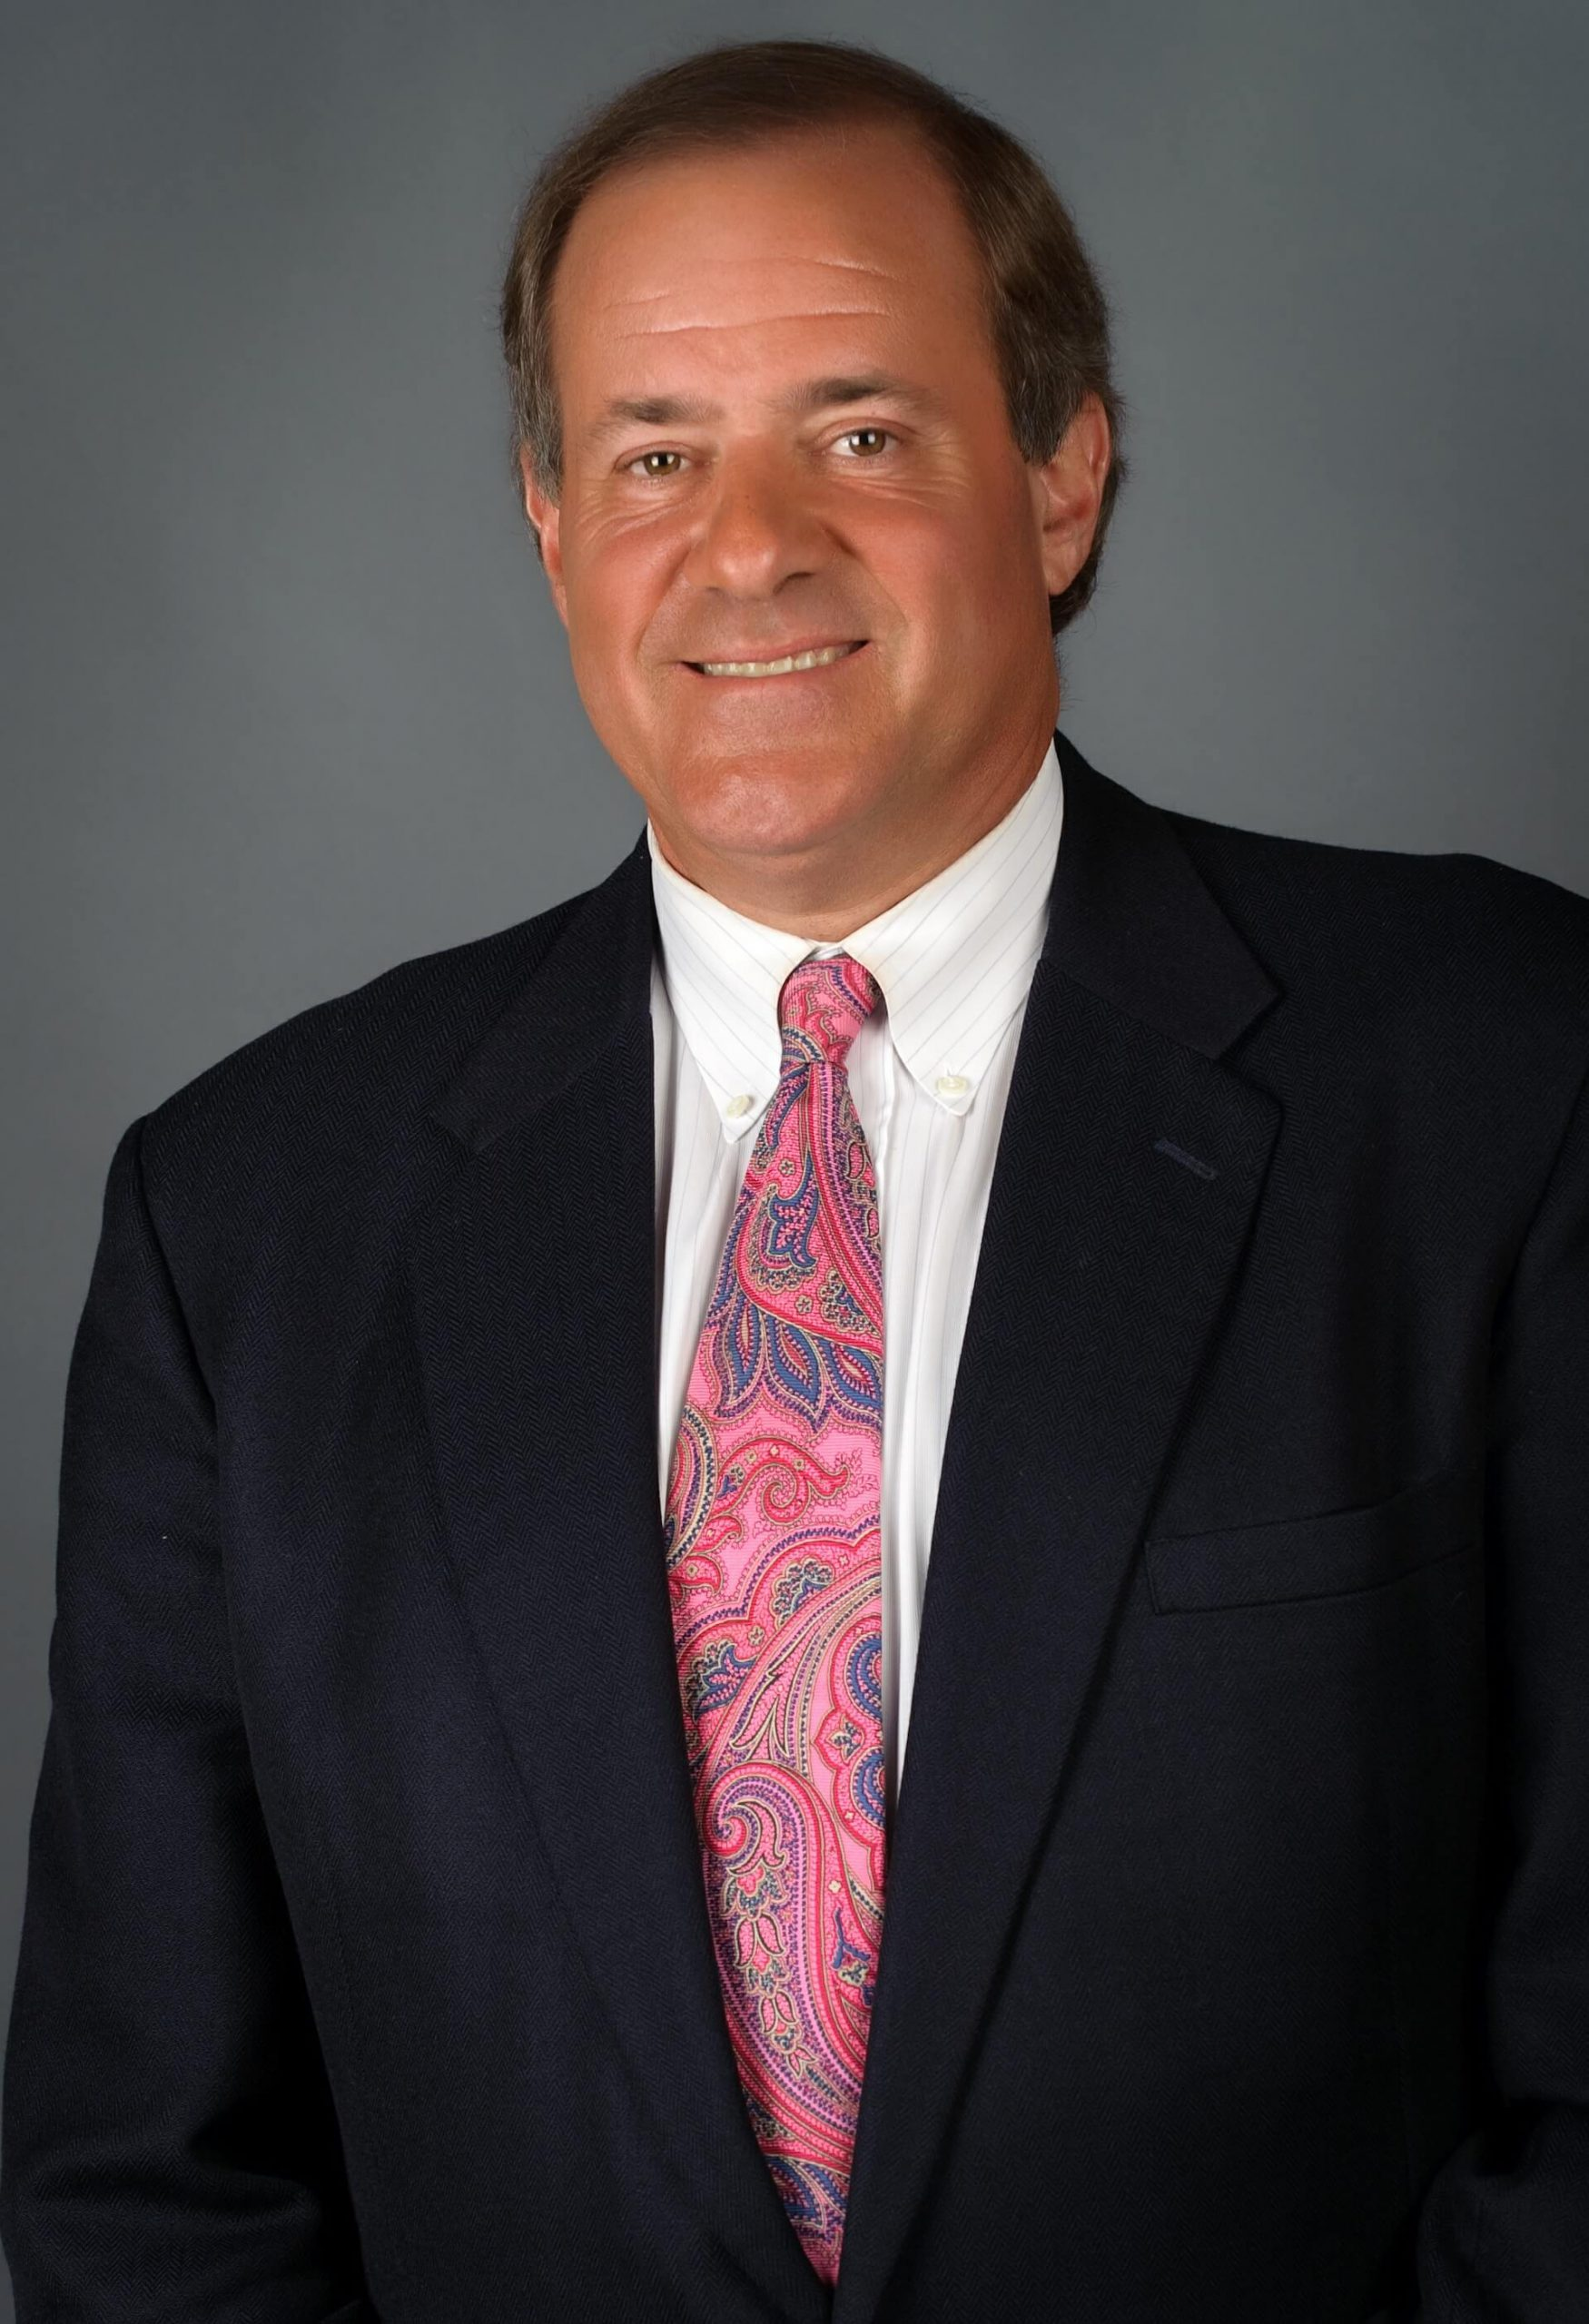 Chris-Berman